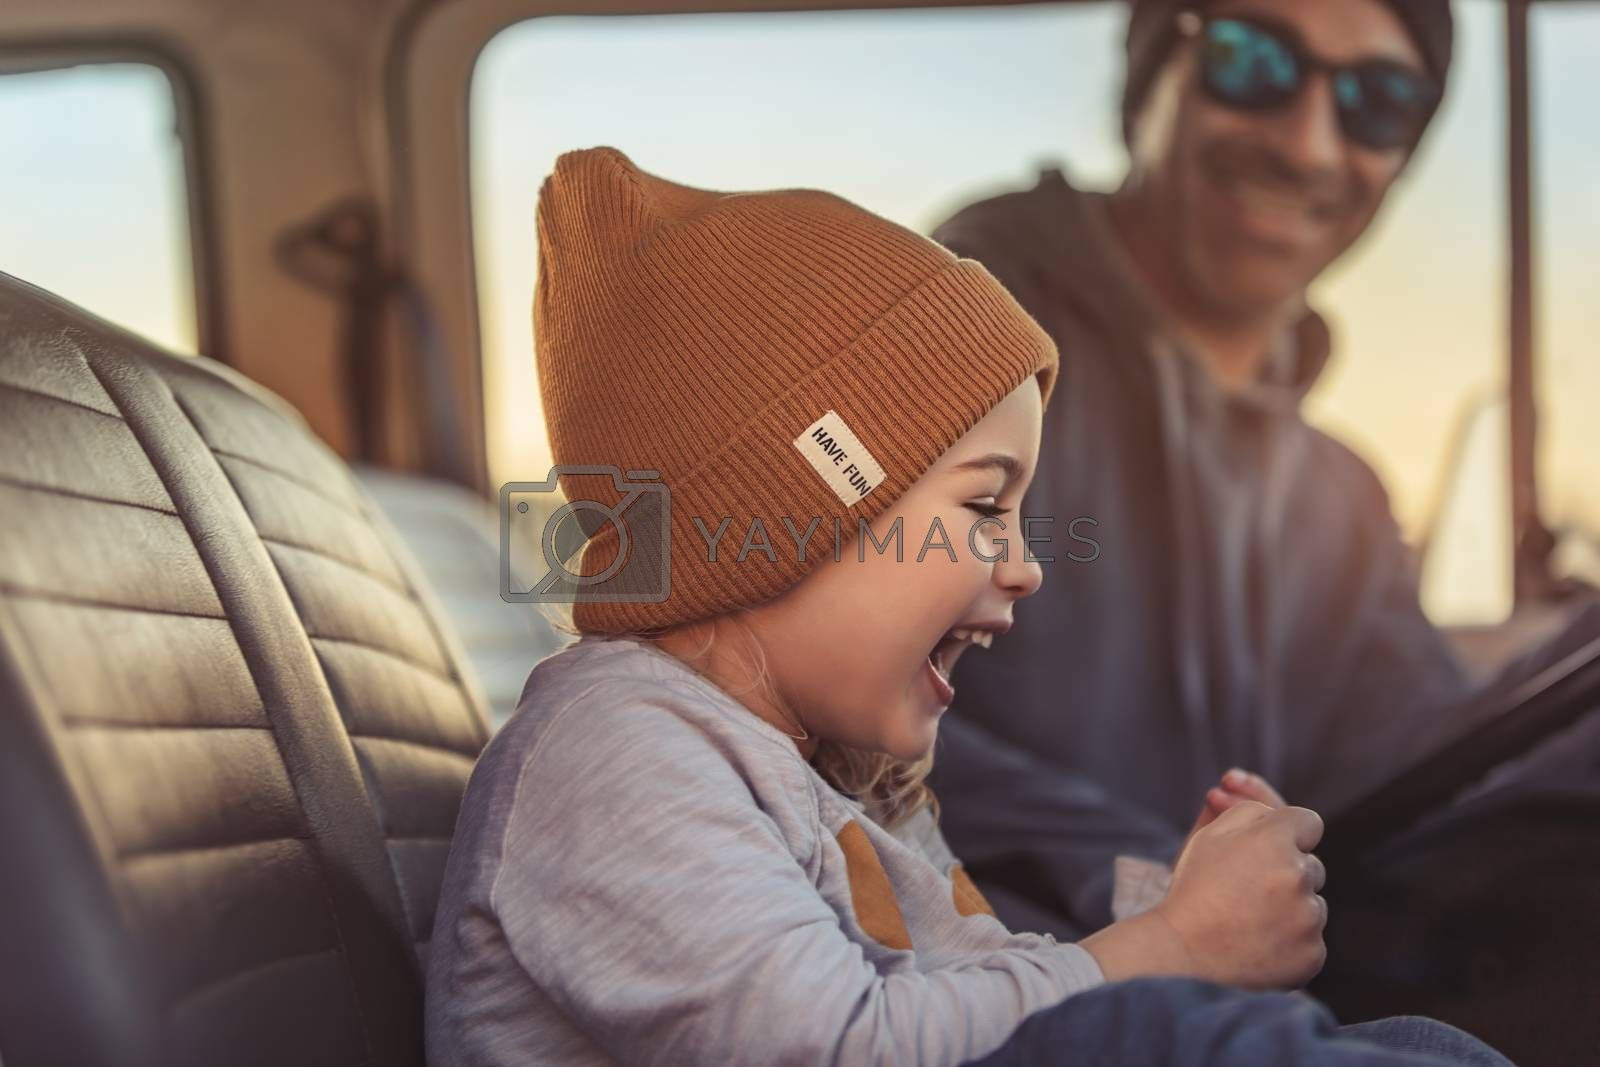 Father with his Little Baby Boy in the Car. Enjoying Road Trip Adventures. Active People. Laughing and with Pleasure Spending Time Together. Happy Family Life.